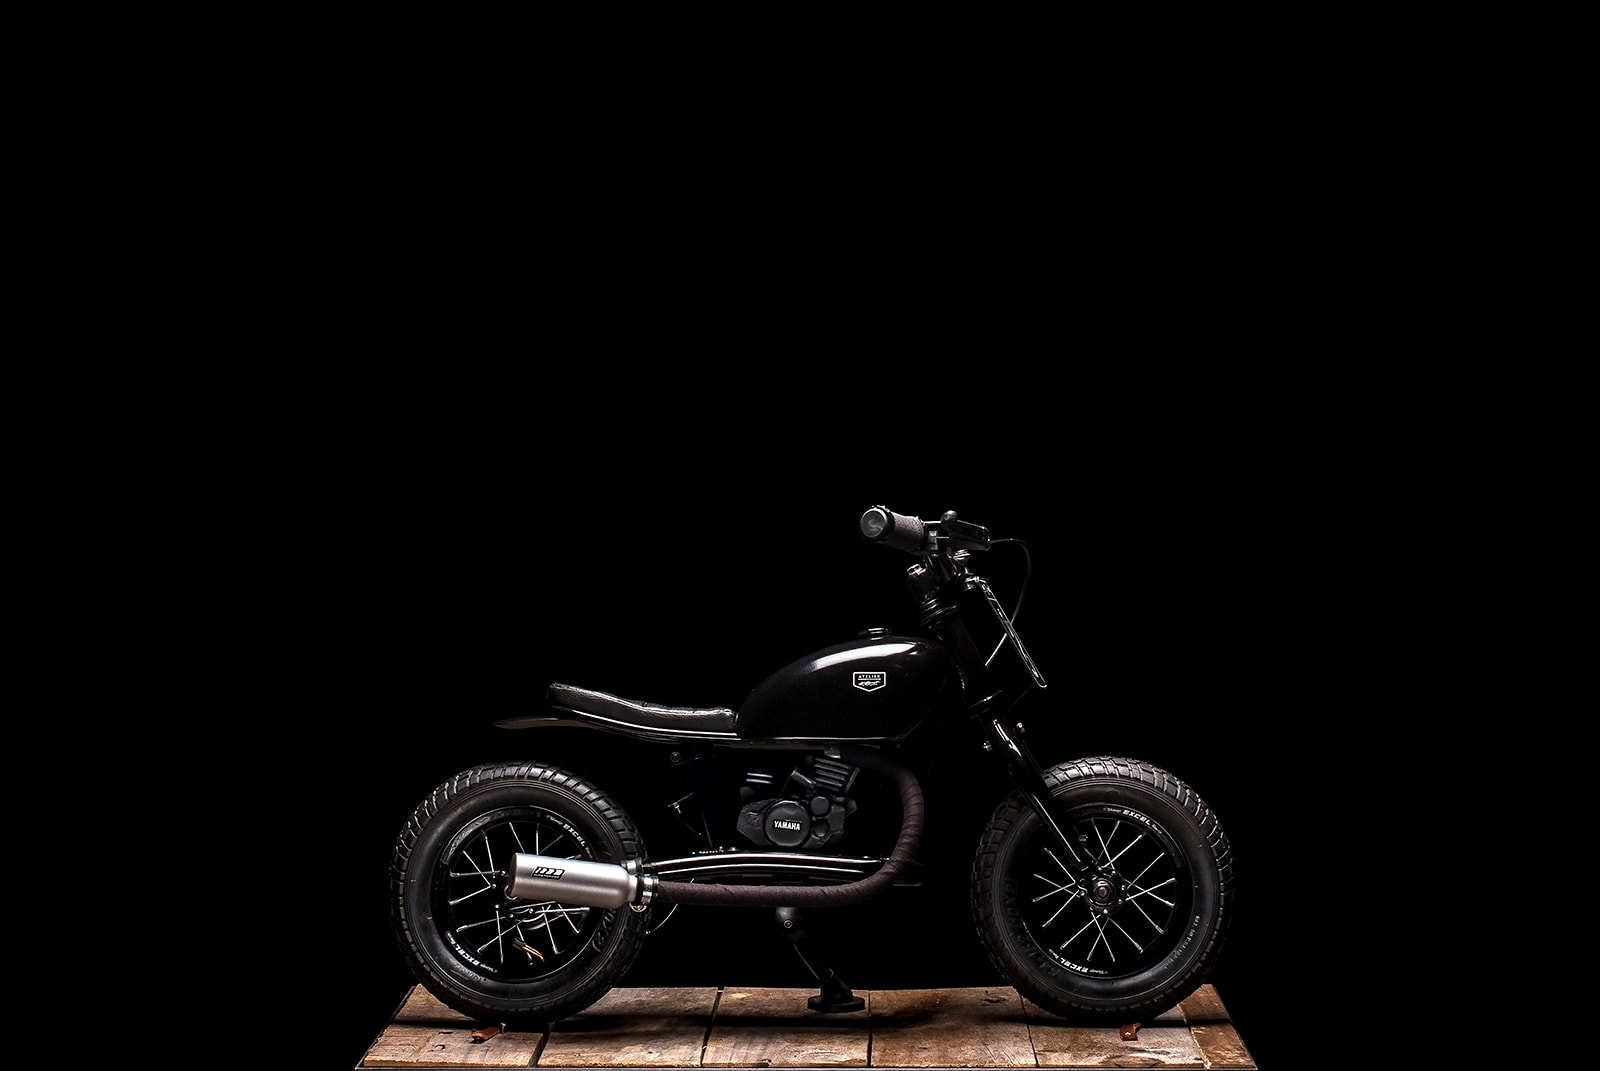 Mini-Brap, mini bike, pocket bike, cafe racer kid enfant vintage